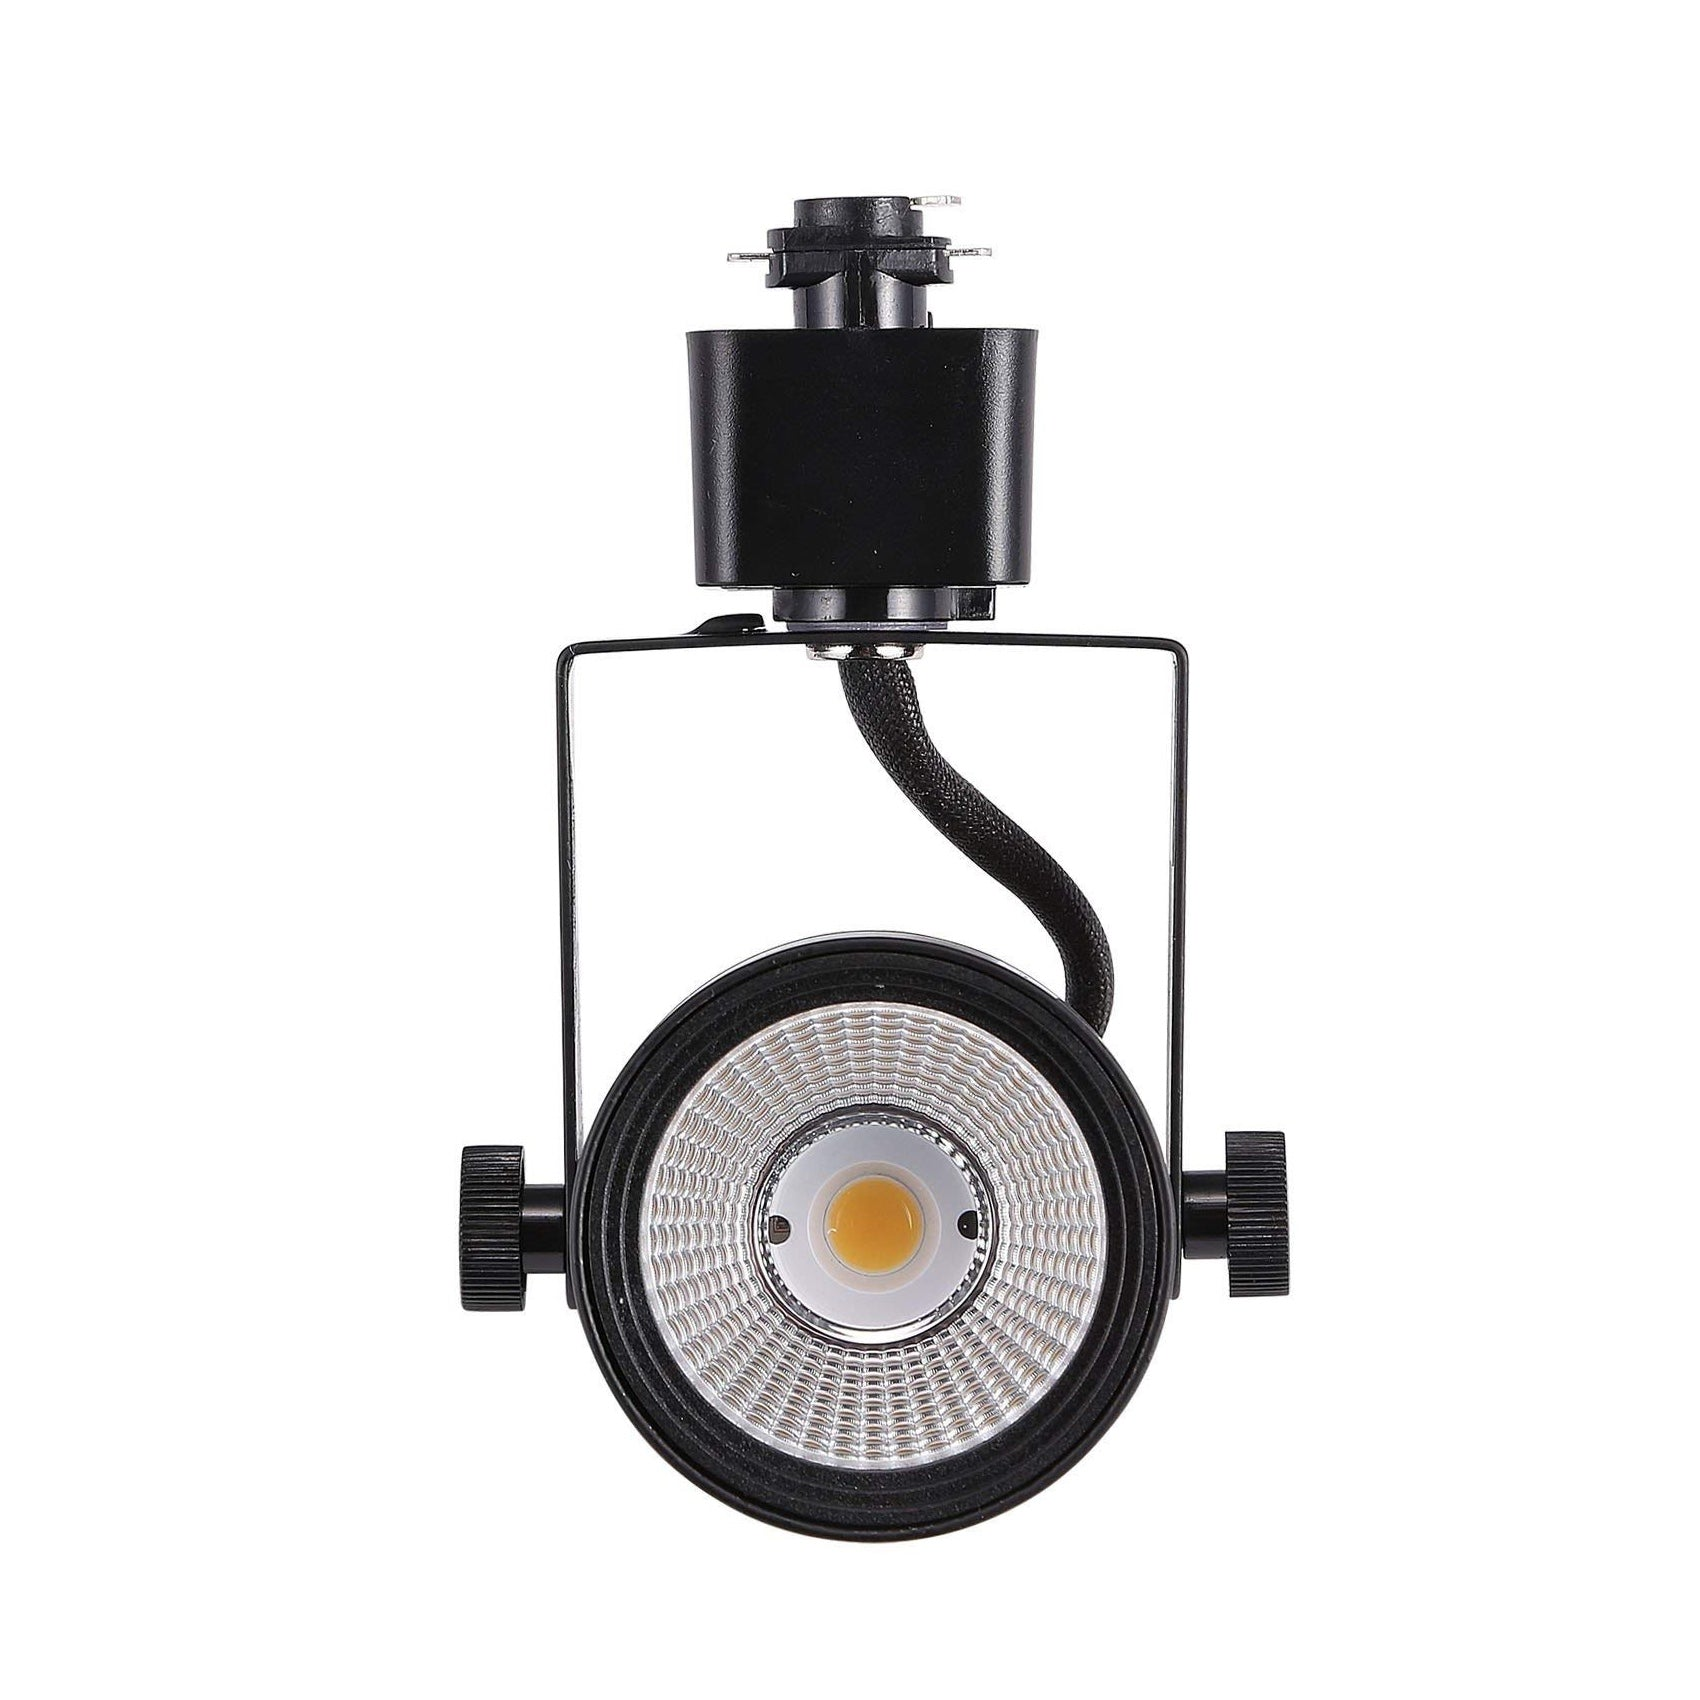 Cloudy Bay Track Light Dimmable LED Black 120v/8w/580lm